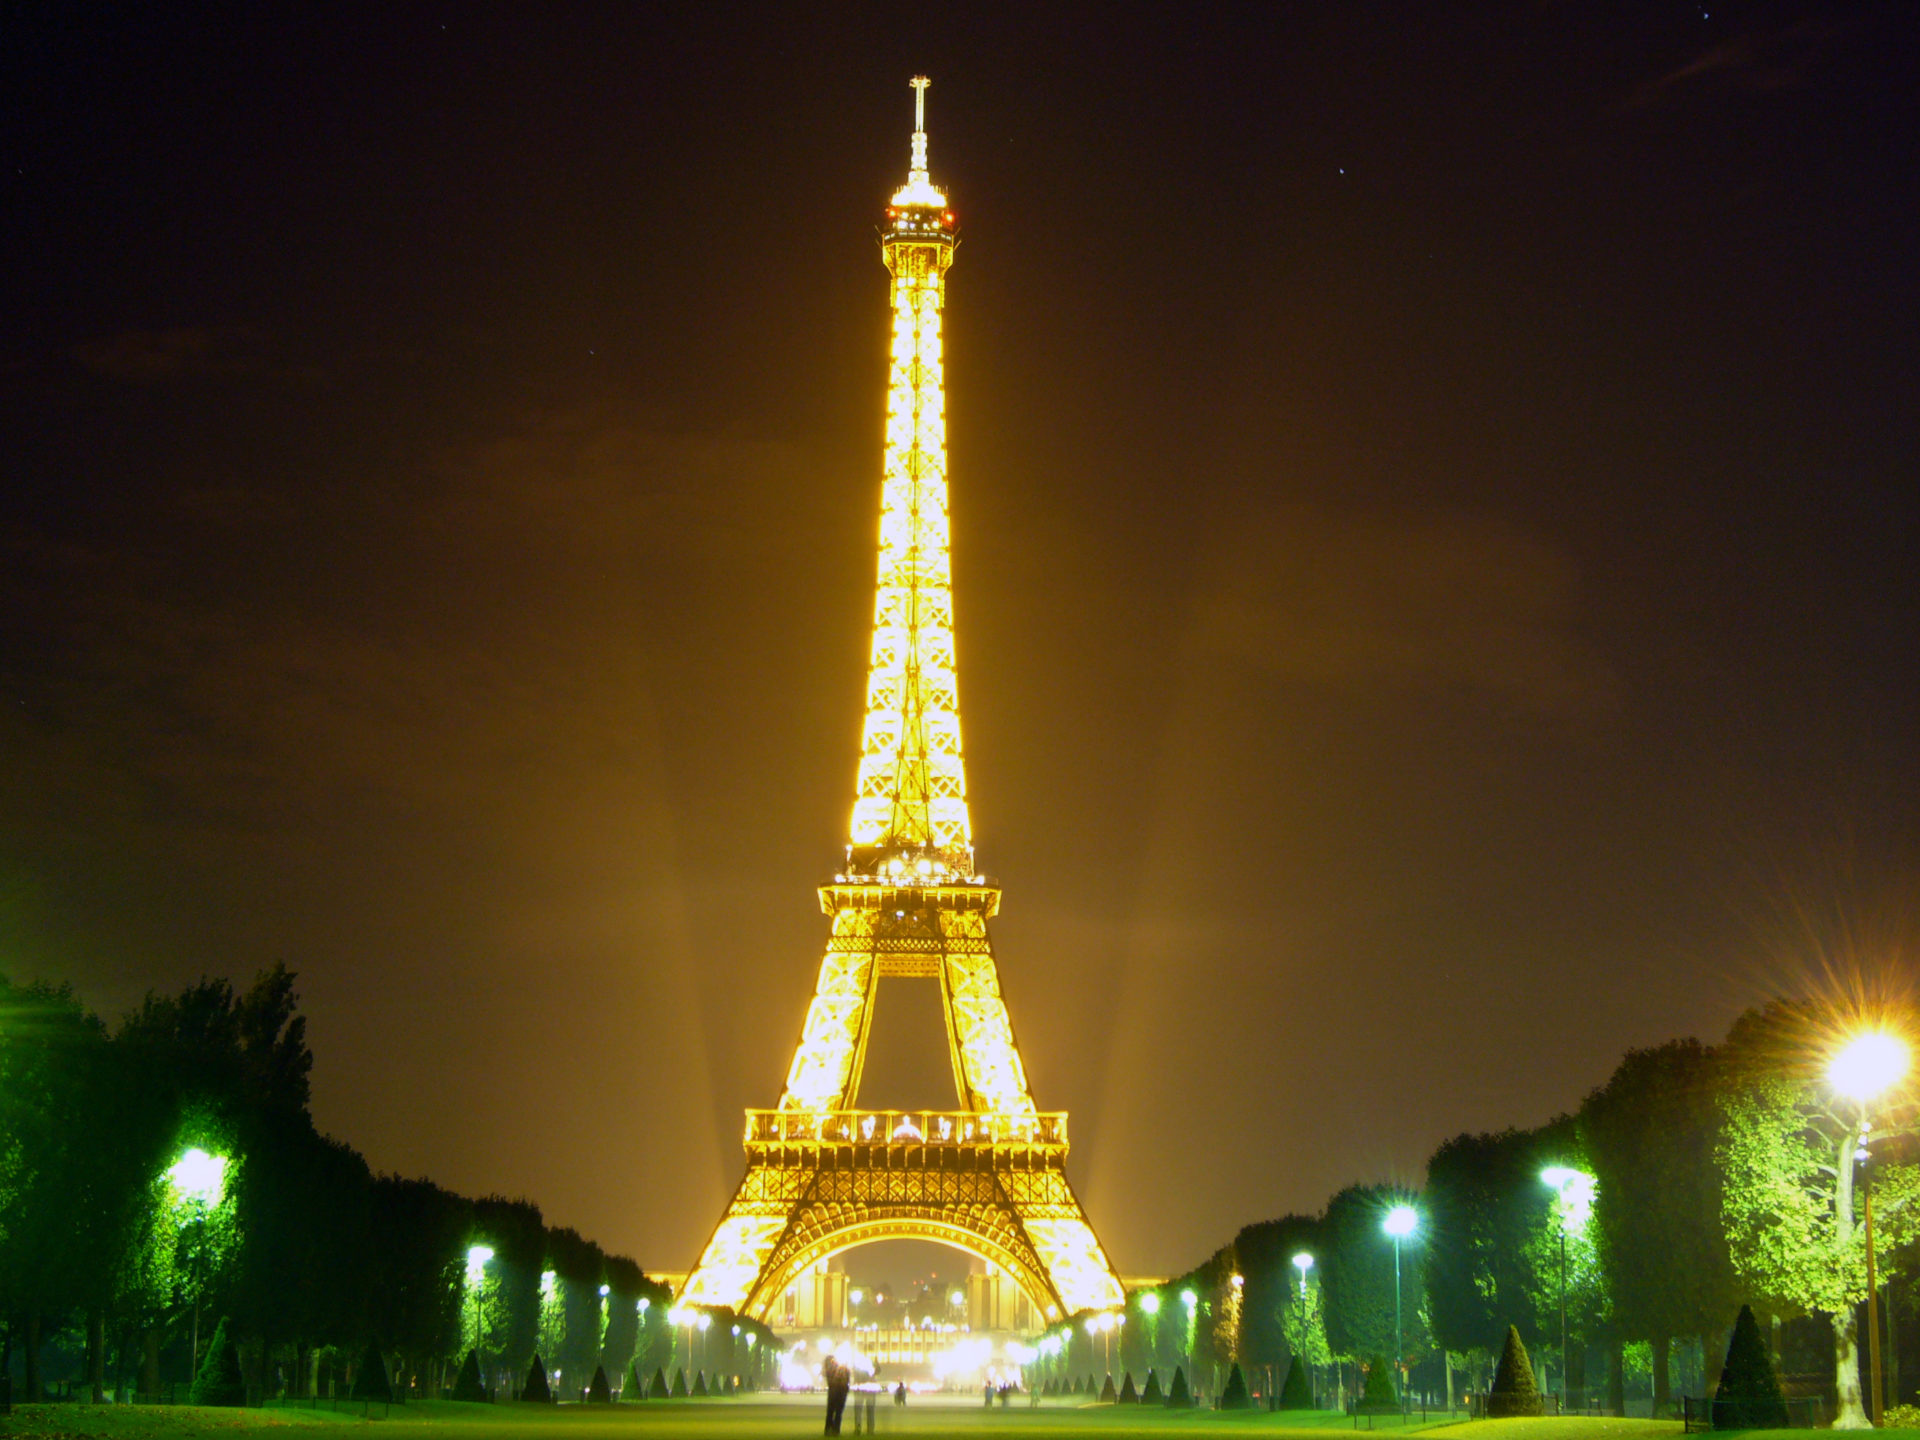 eiffel tower new7wonders of the world. Black Bedroom Furniture Sets. Home Design Ideas